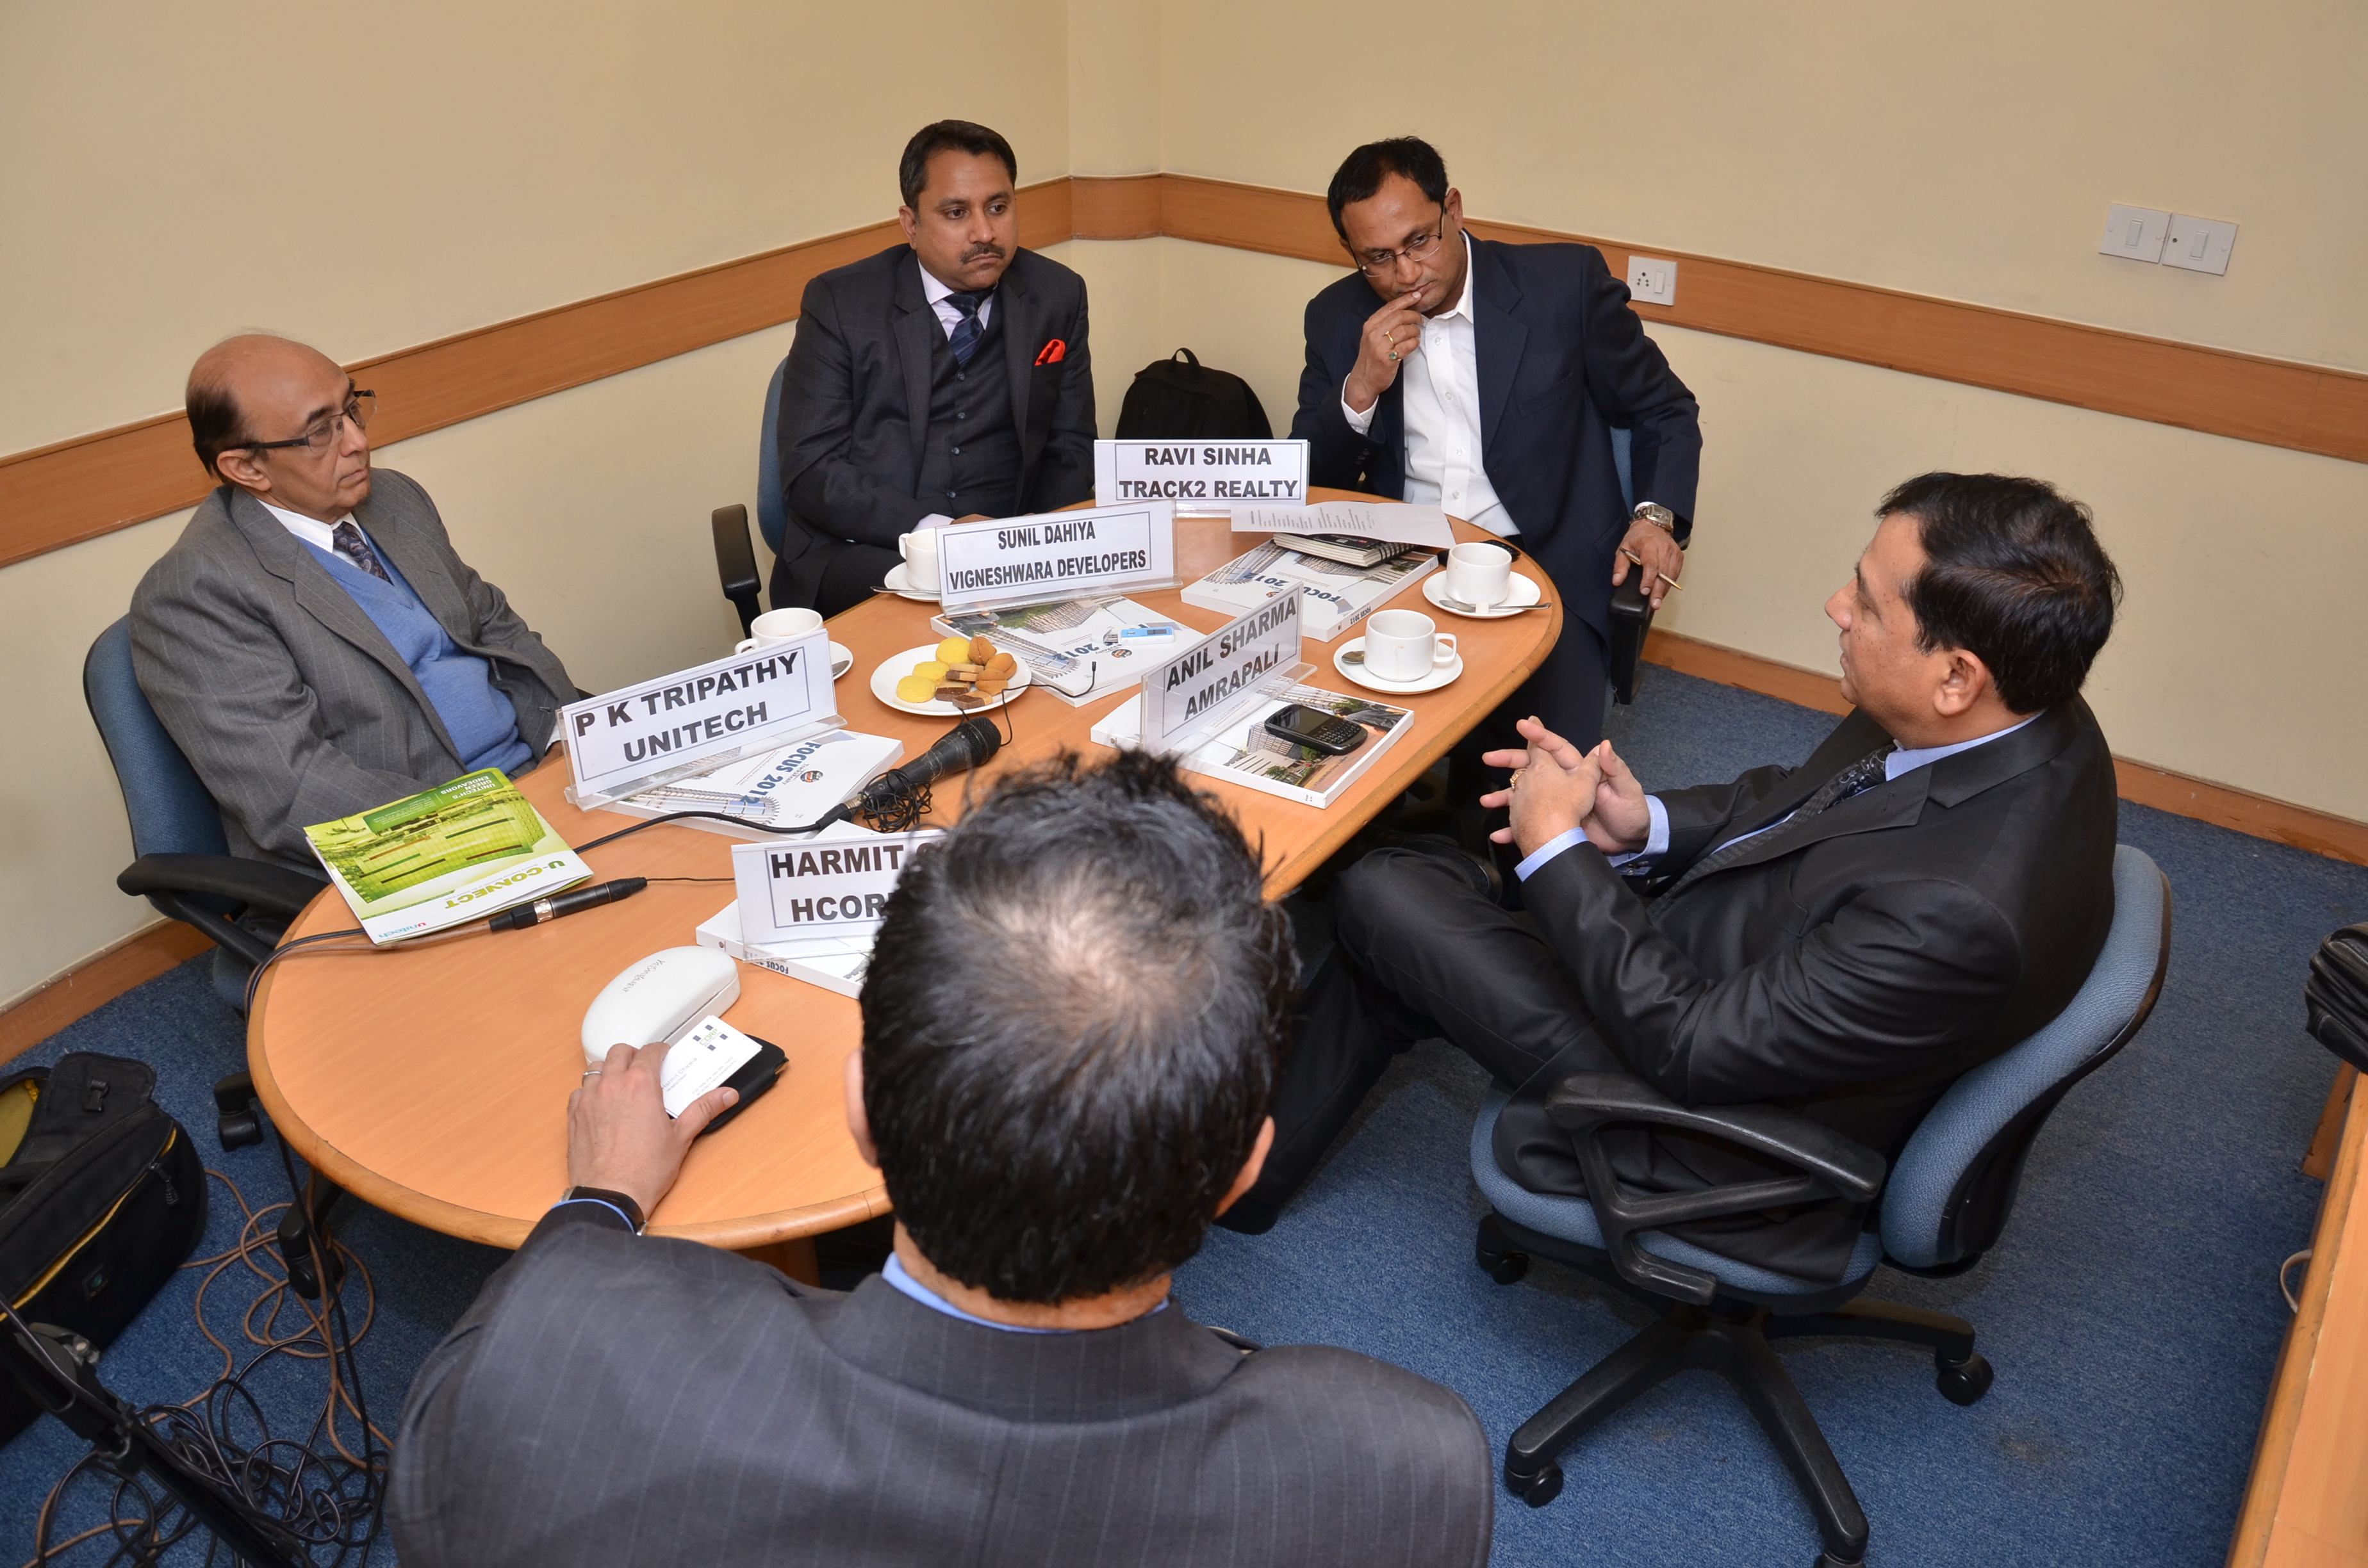 2012 Roundtable Final, India real estate news, Indian realty news, Property new, Home, Policy Advocacy, Activism, Mall, Retail, Office space, SEZ, IT/ITeS, Residential, Commercial, Hospitality, Project, Location, Regulation, FDI, Taxation, Investment, Banking, Property Management, Ravi Sinha, Track2Media, Track2Realty